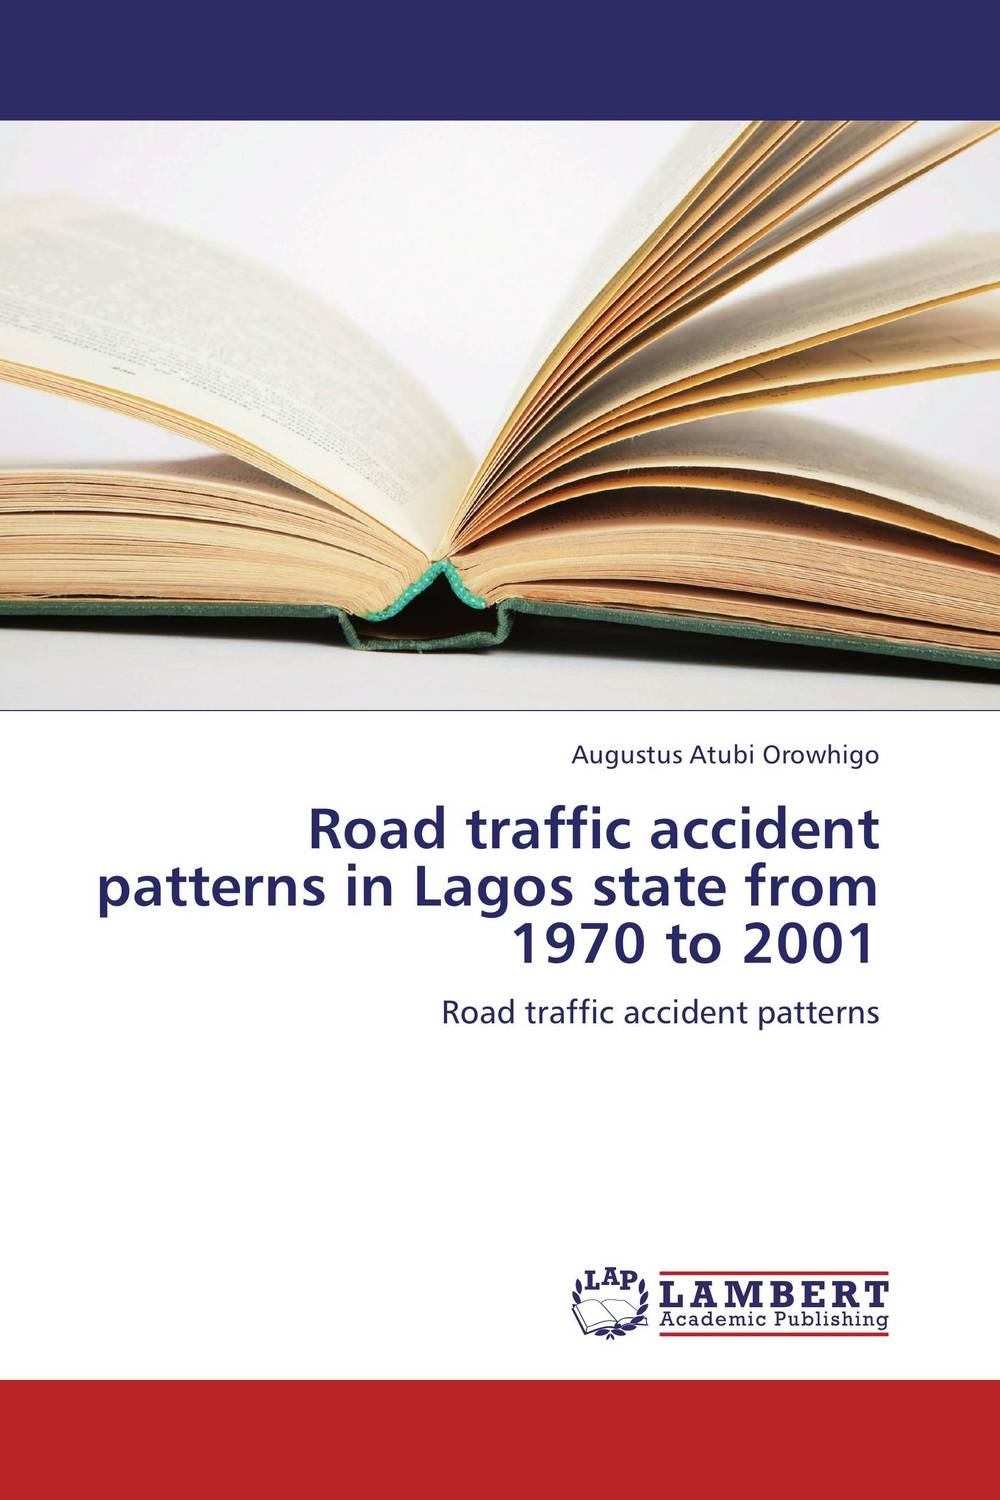 Road traffic accident patterns in Lagos state from 1970 to 2001 candle led bulb e14 9w 12w aluminum shell e14 led light lamp 220v golden silver cool warm white ampoule lampara led smd 2835